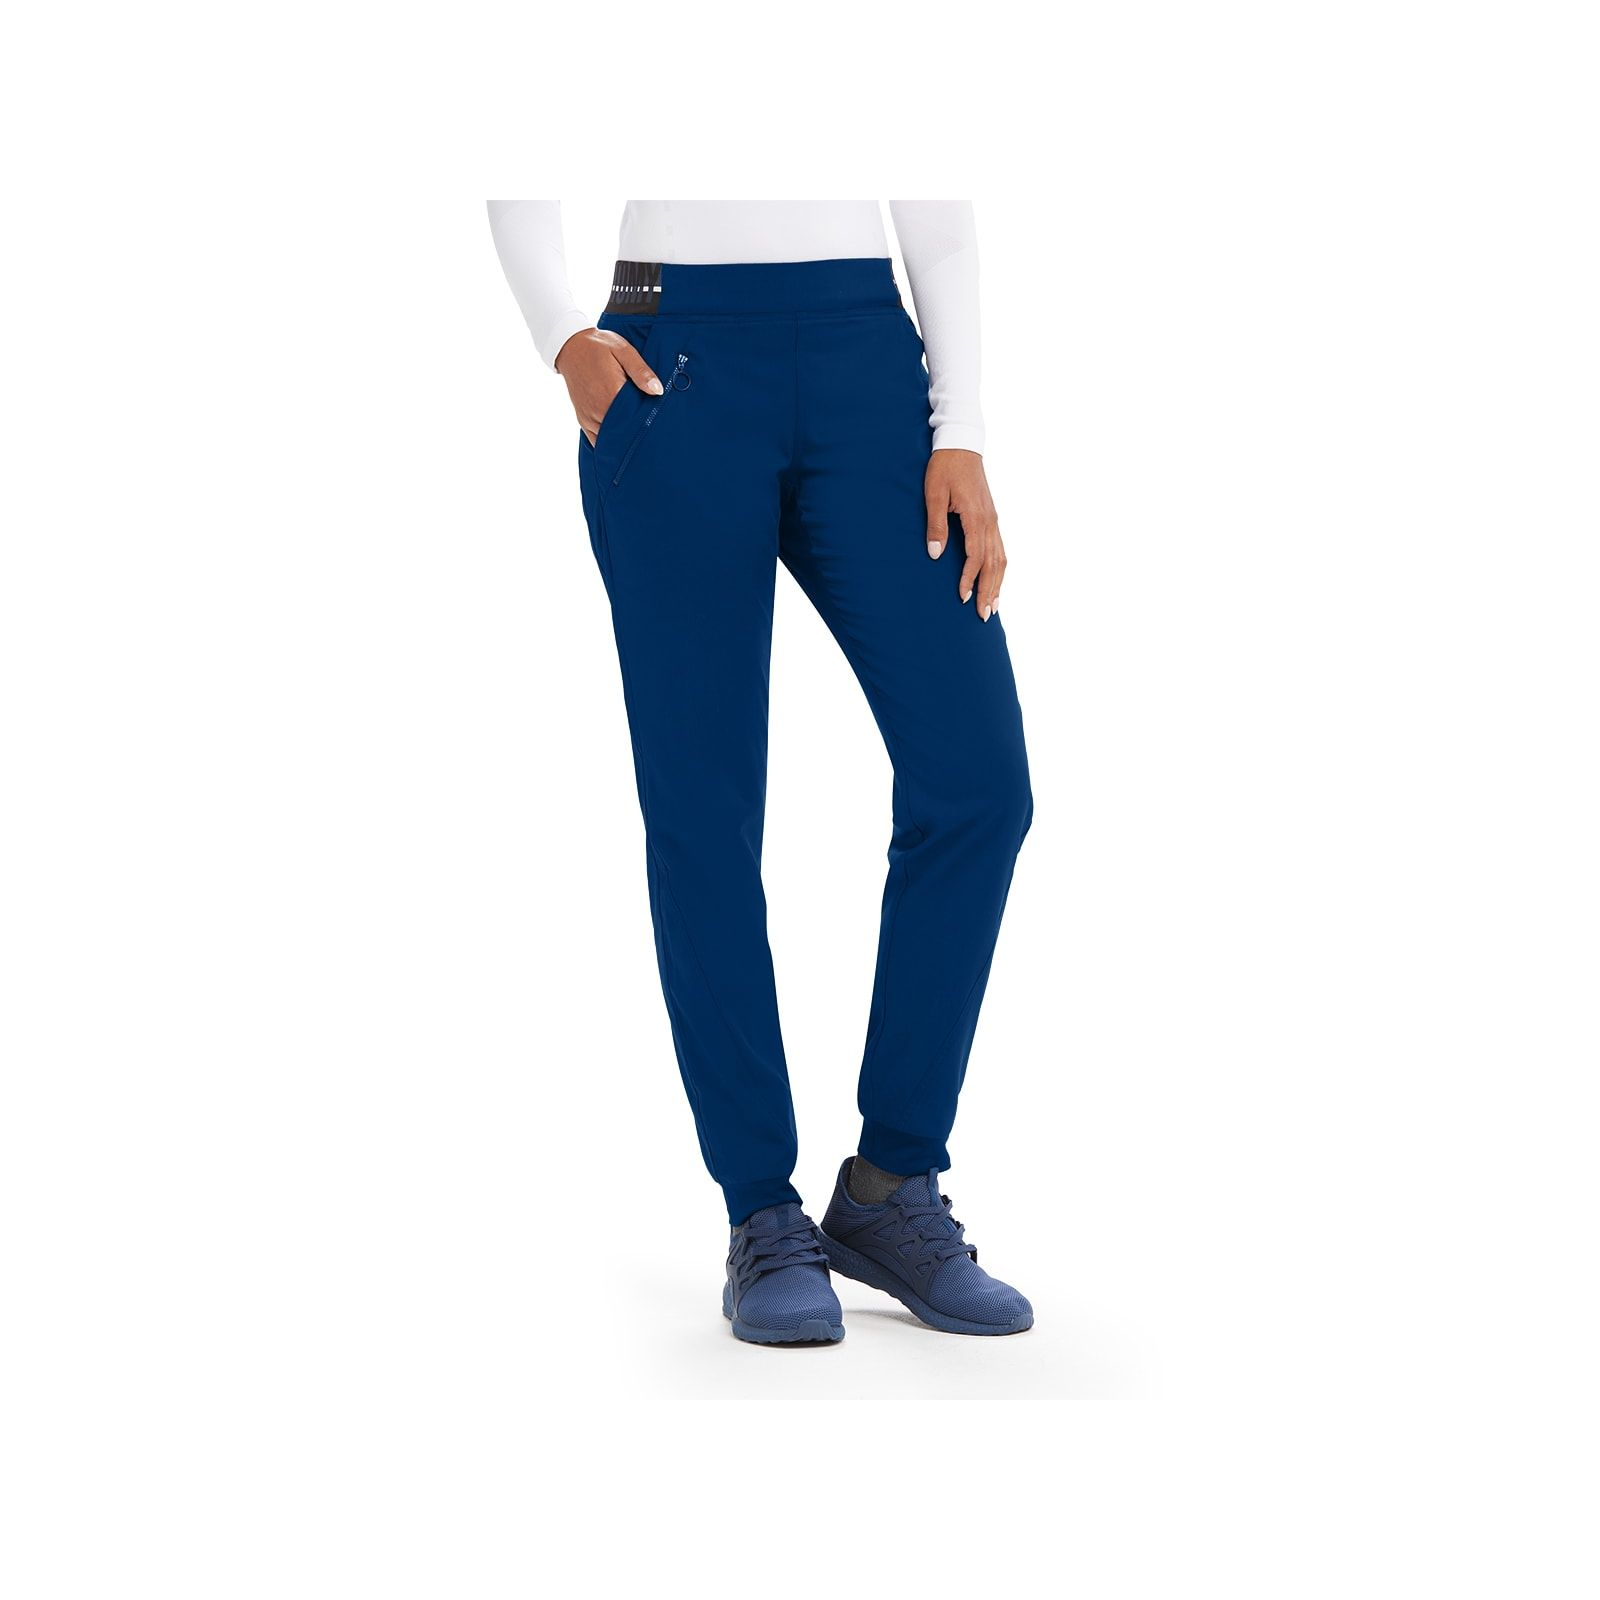 "Pantalon médical femme, couleur bleu marine vue de face, collection ""Grey's Anatomy Stretch"" (GVSP512-)"